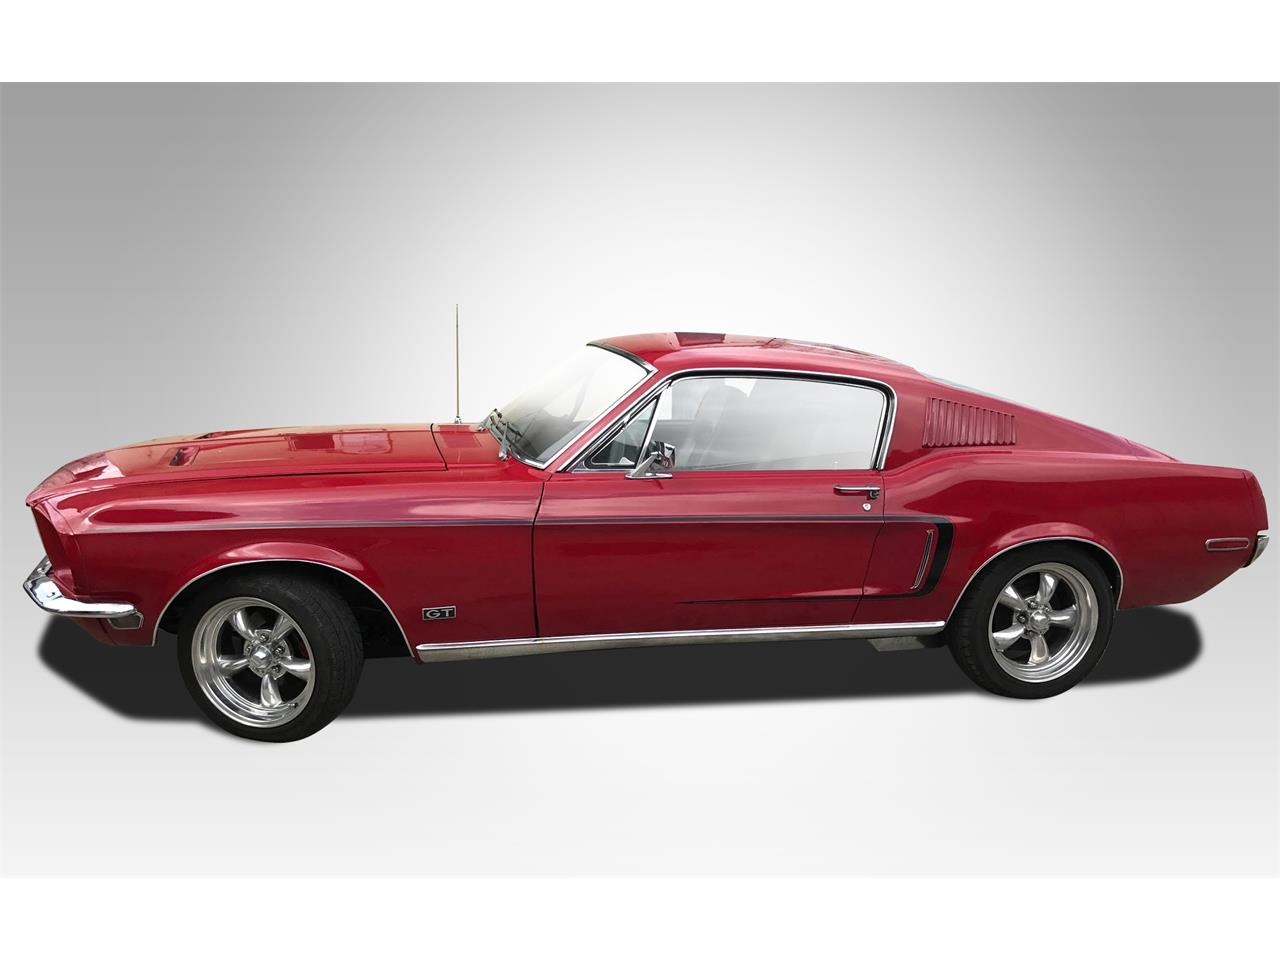 Large Picture of '68 Mustang located in West Hollywood California - $73,000.00 - K257